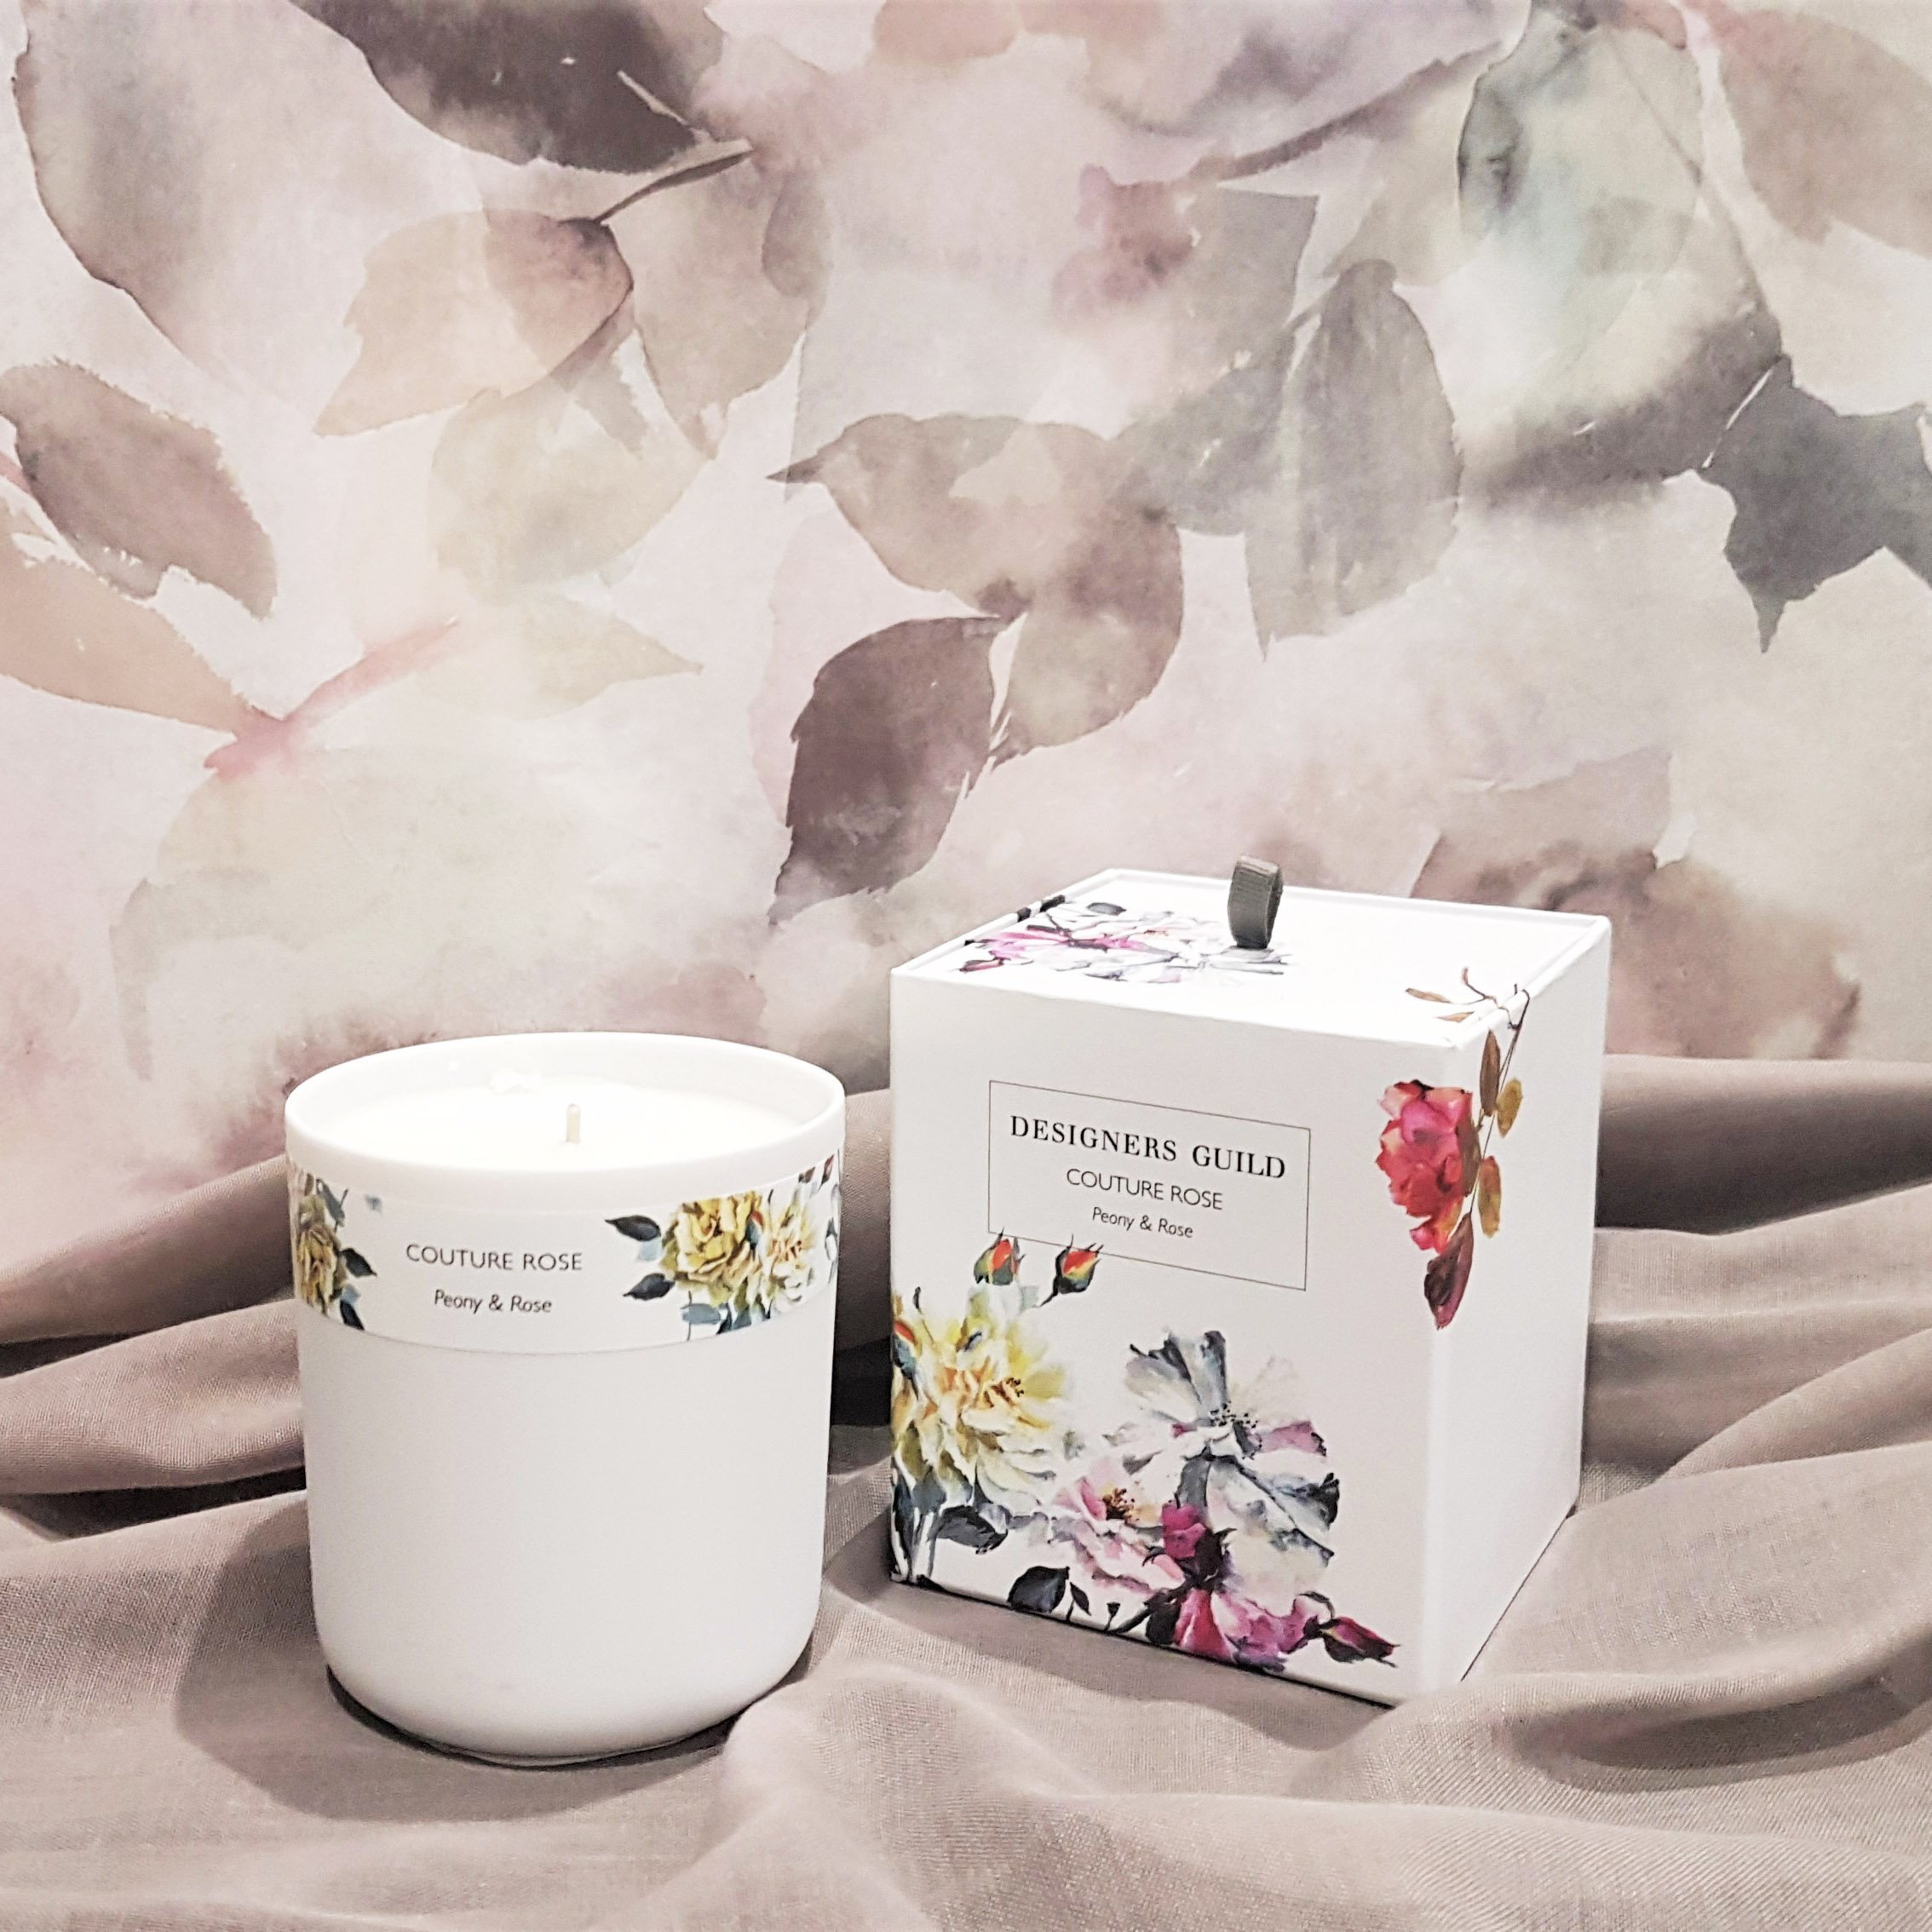 Under £100 - Designers Guild Candles - Wallpaper